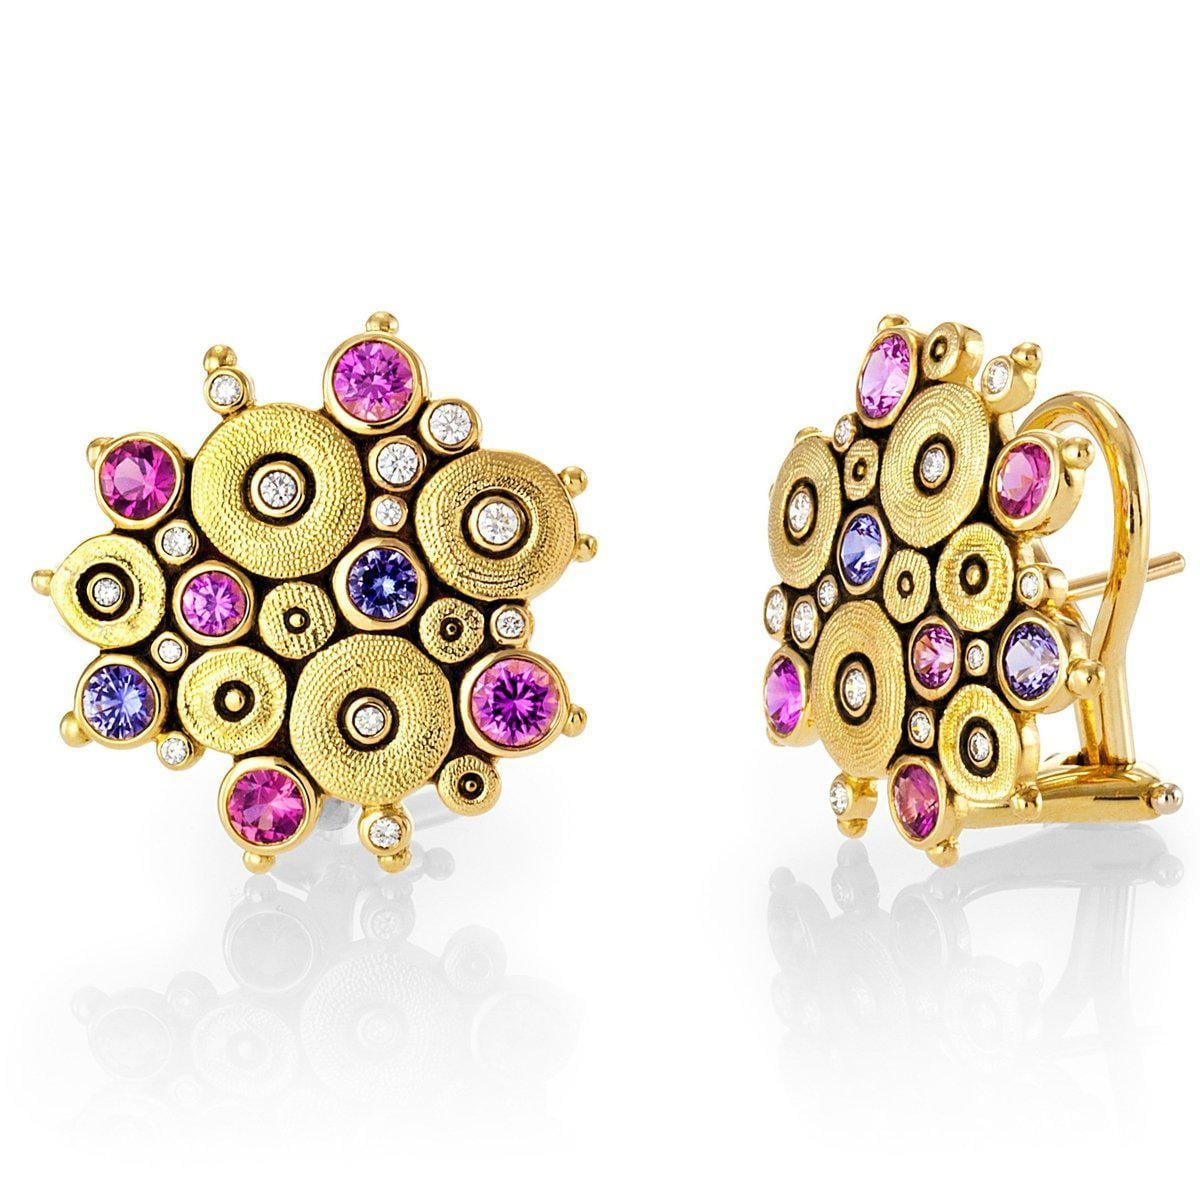 18K Ocean Pink/Purple Mix Sapphire & Diamond Earrings - E-90S-Alex Sepkus-Renee Taylor Gallery